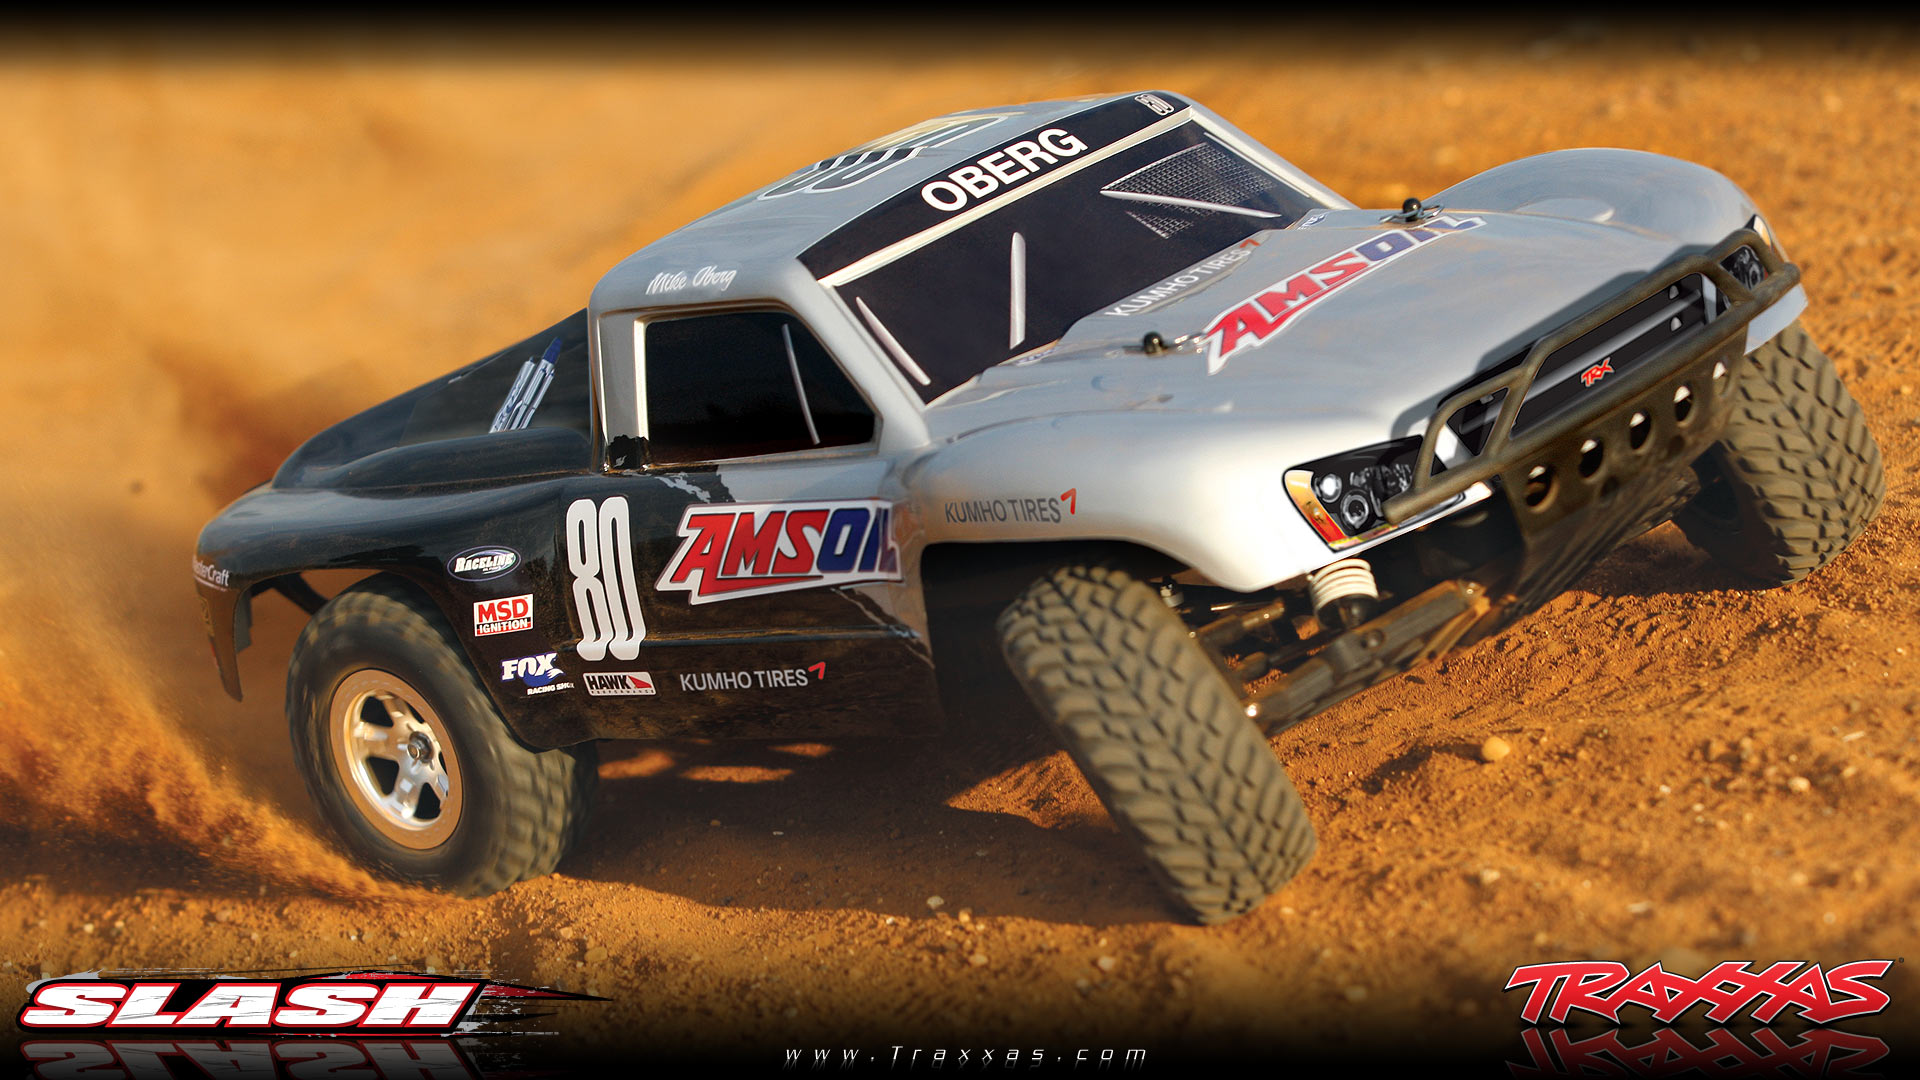 Traxxas Wallpaper